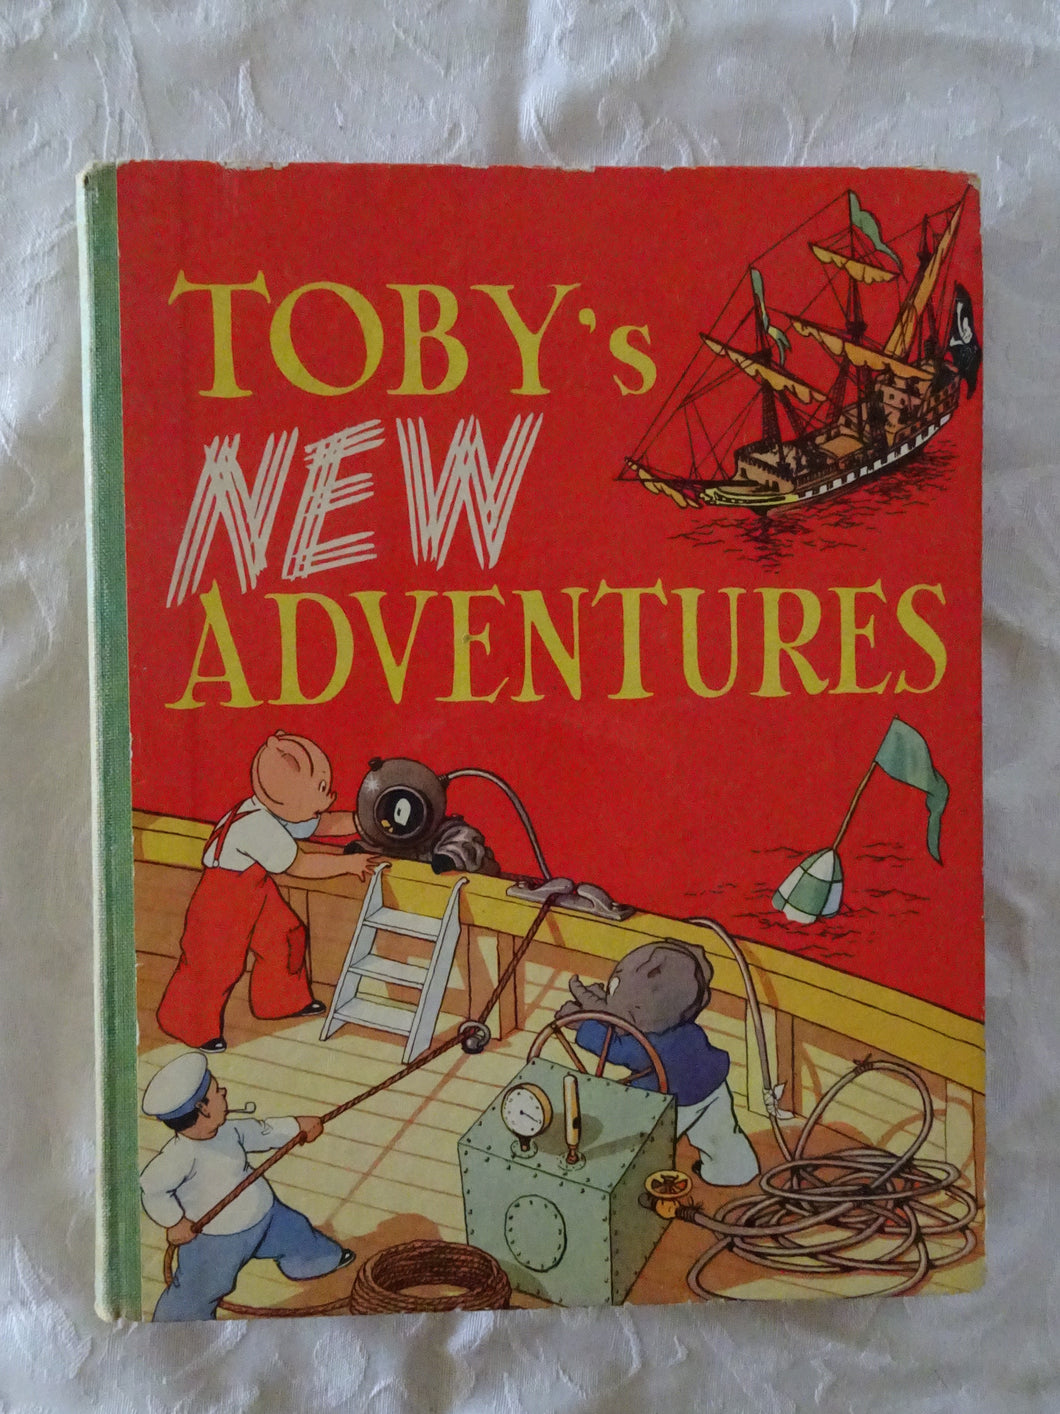 Toby's New Adventures by Sheila Hodgetts